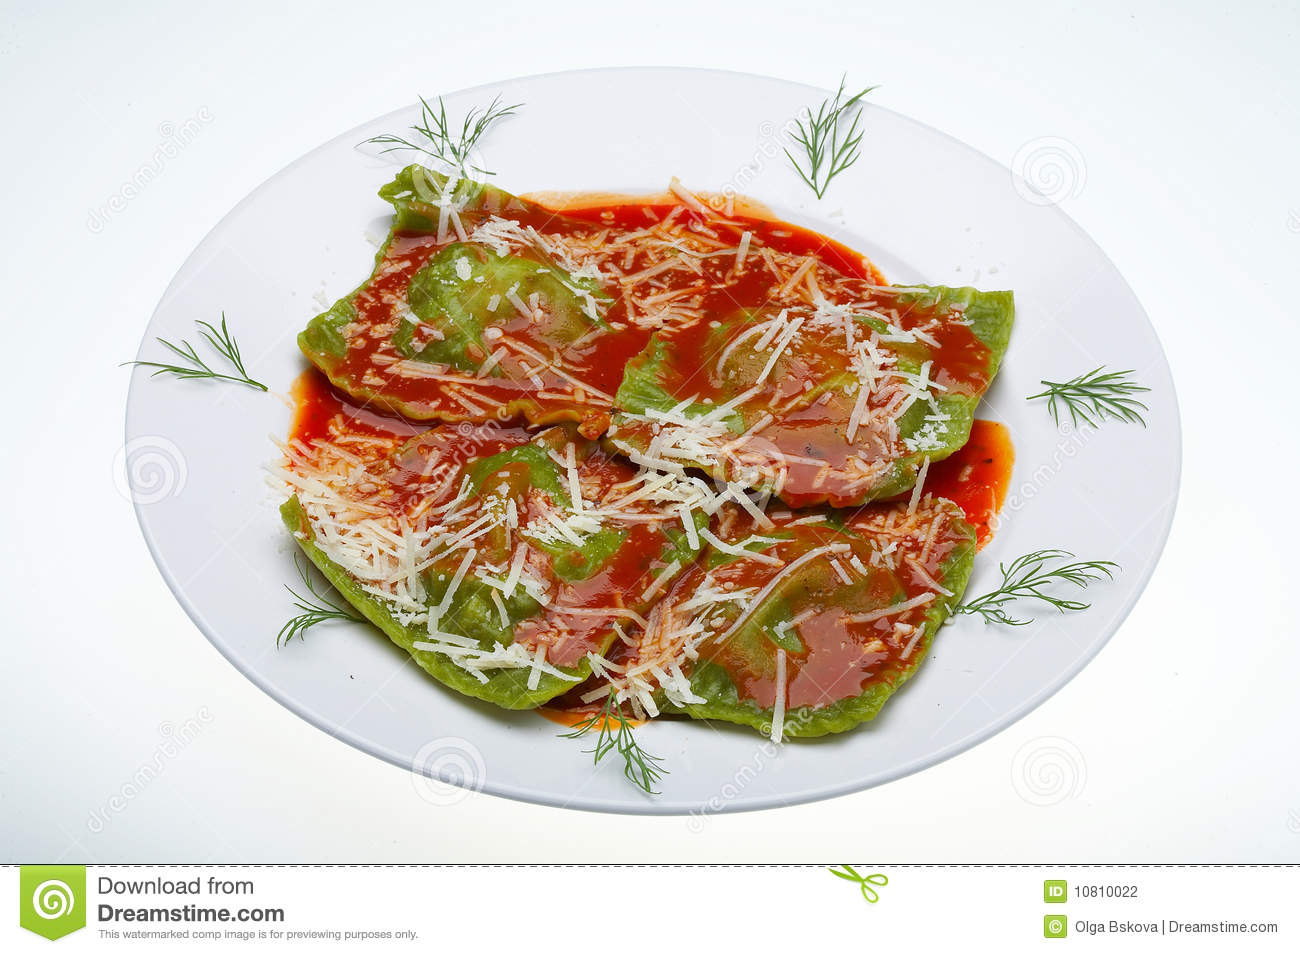 Ravioli italiano do alimento